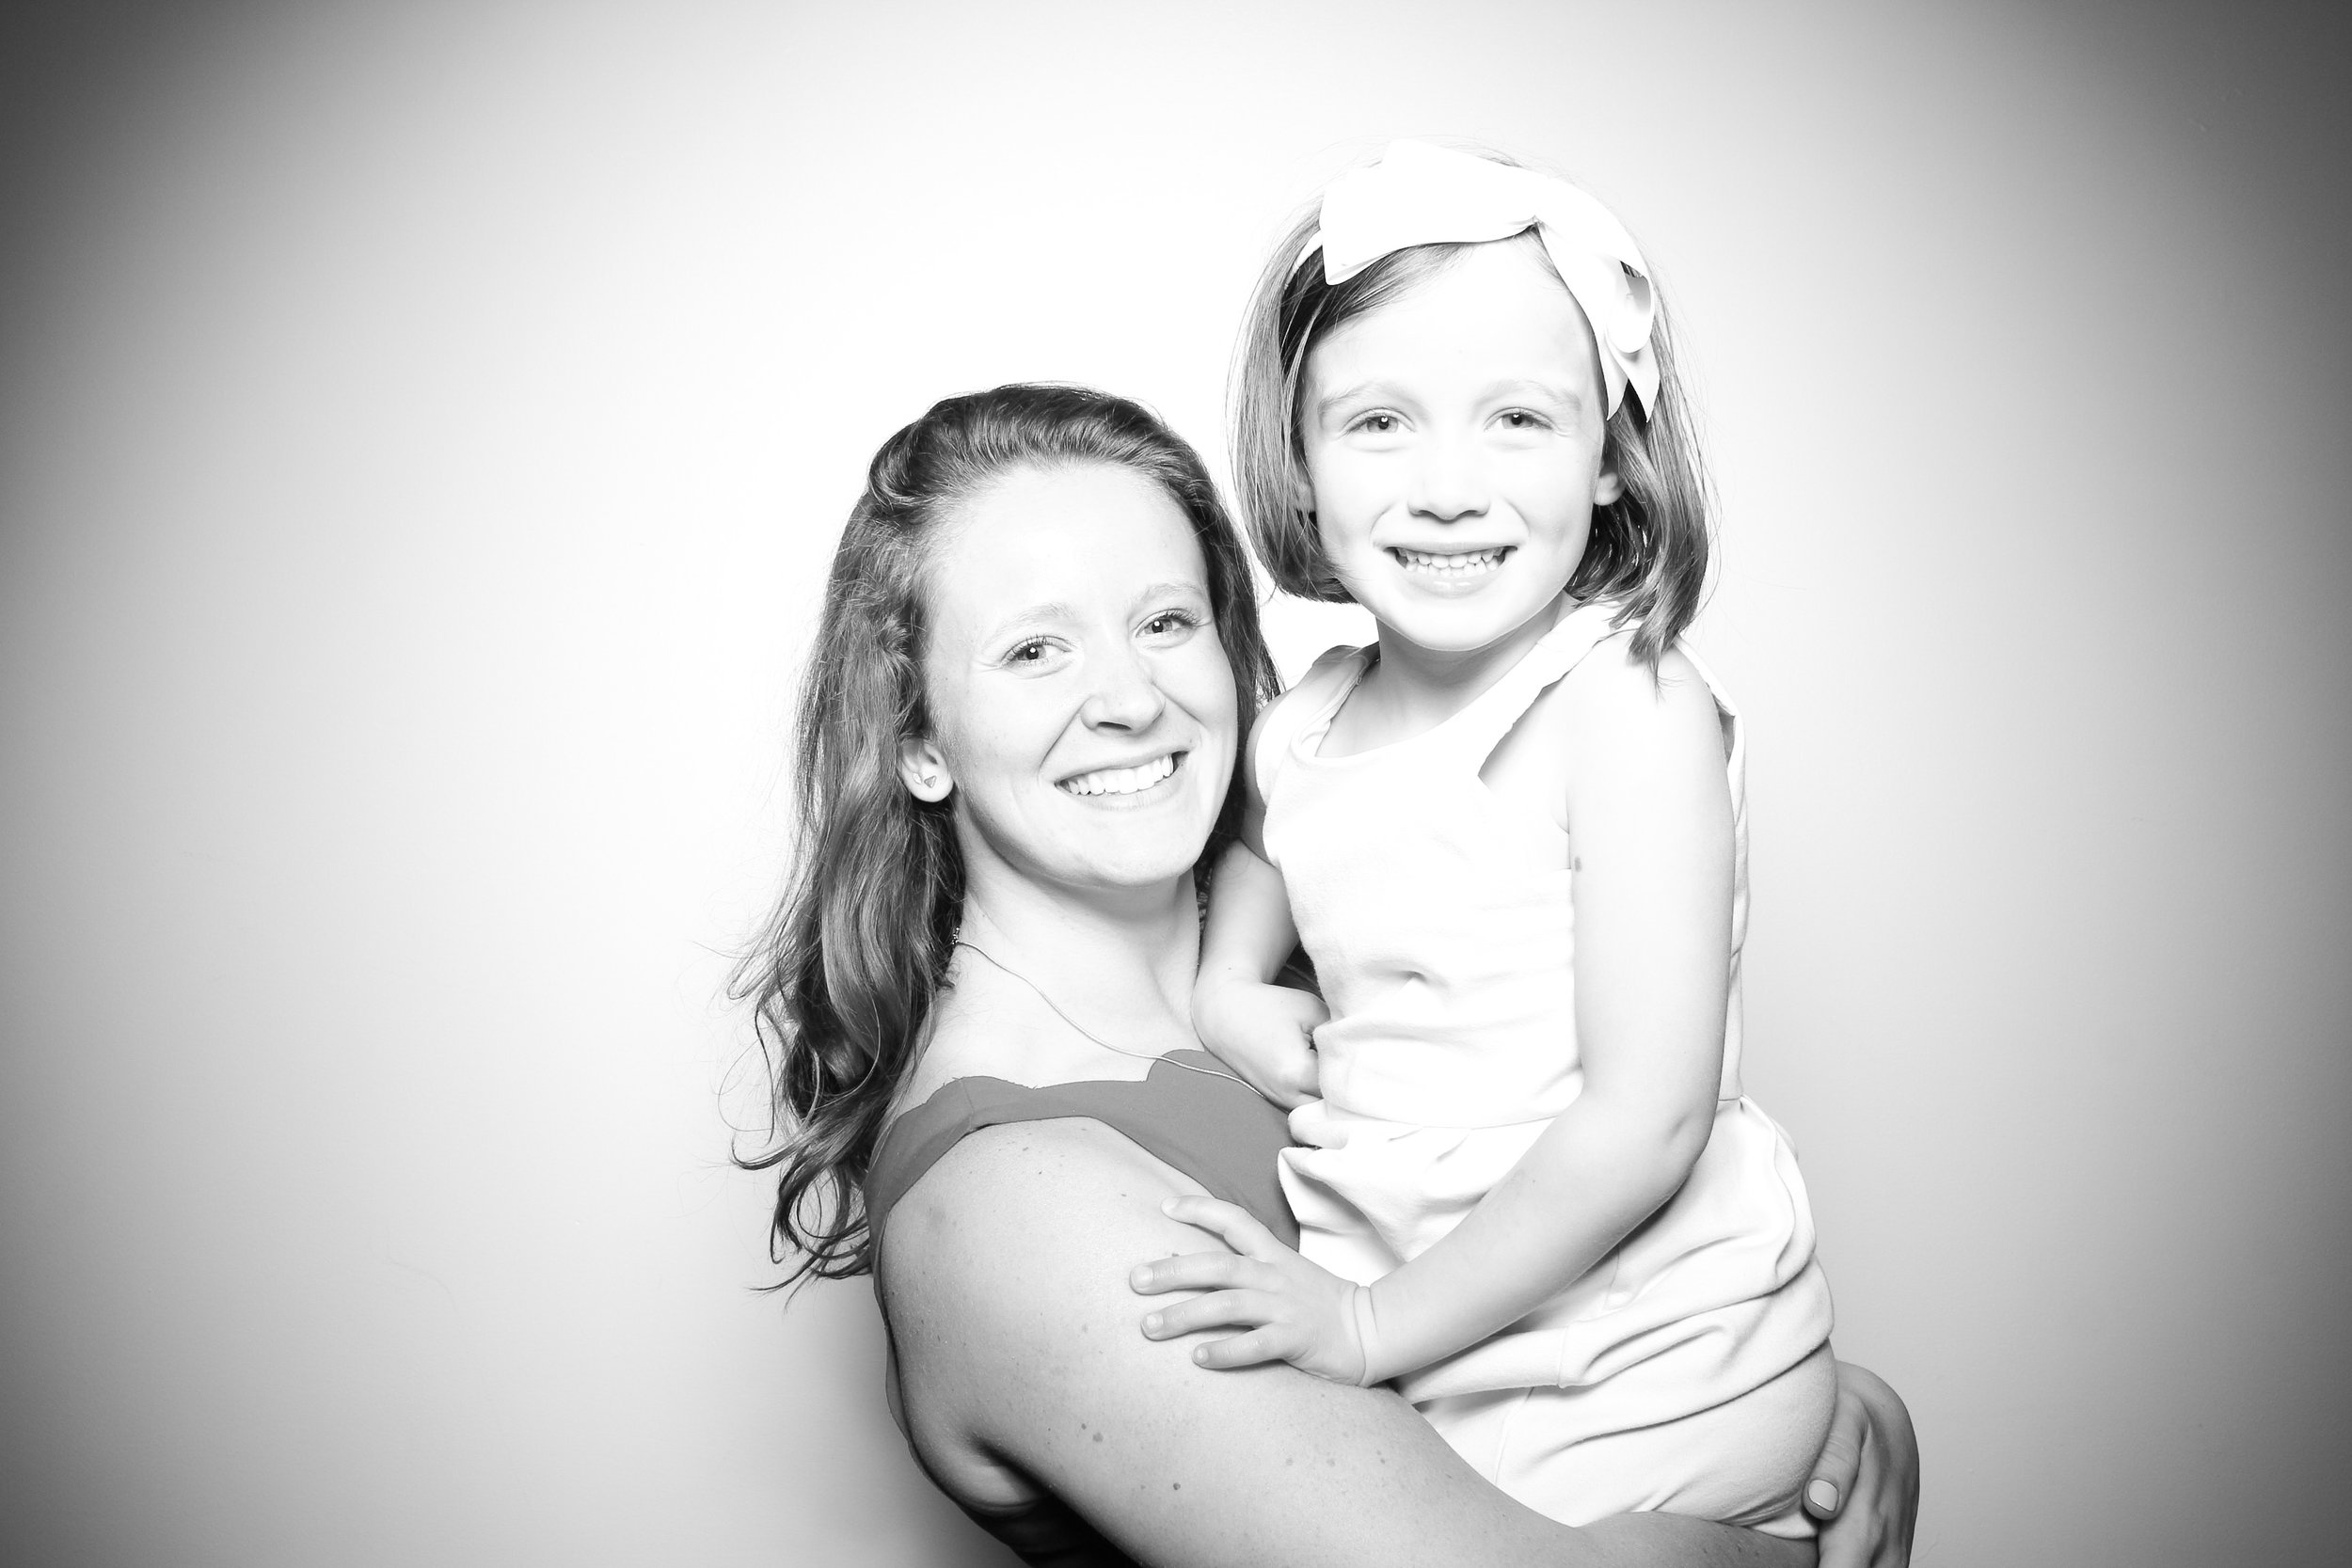 The flower girl poses for a photo booth pic at Ravenswood Atrium Loft!